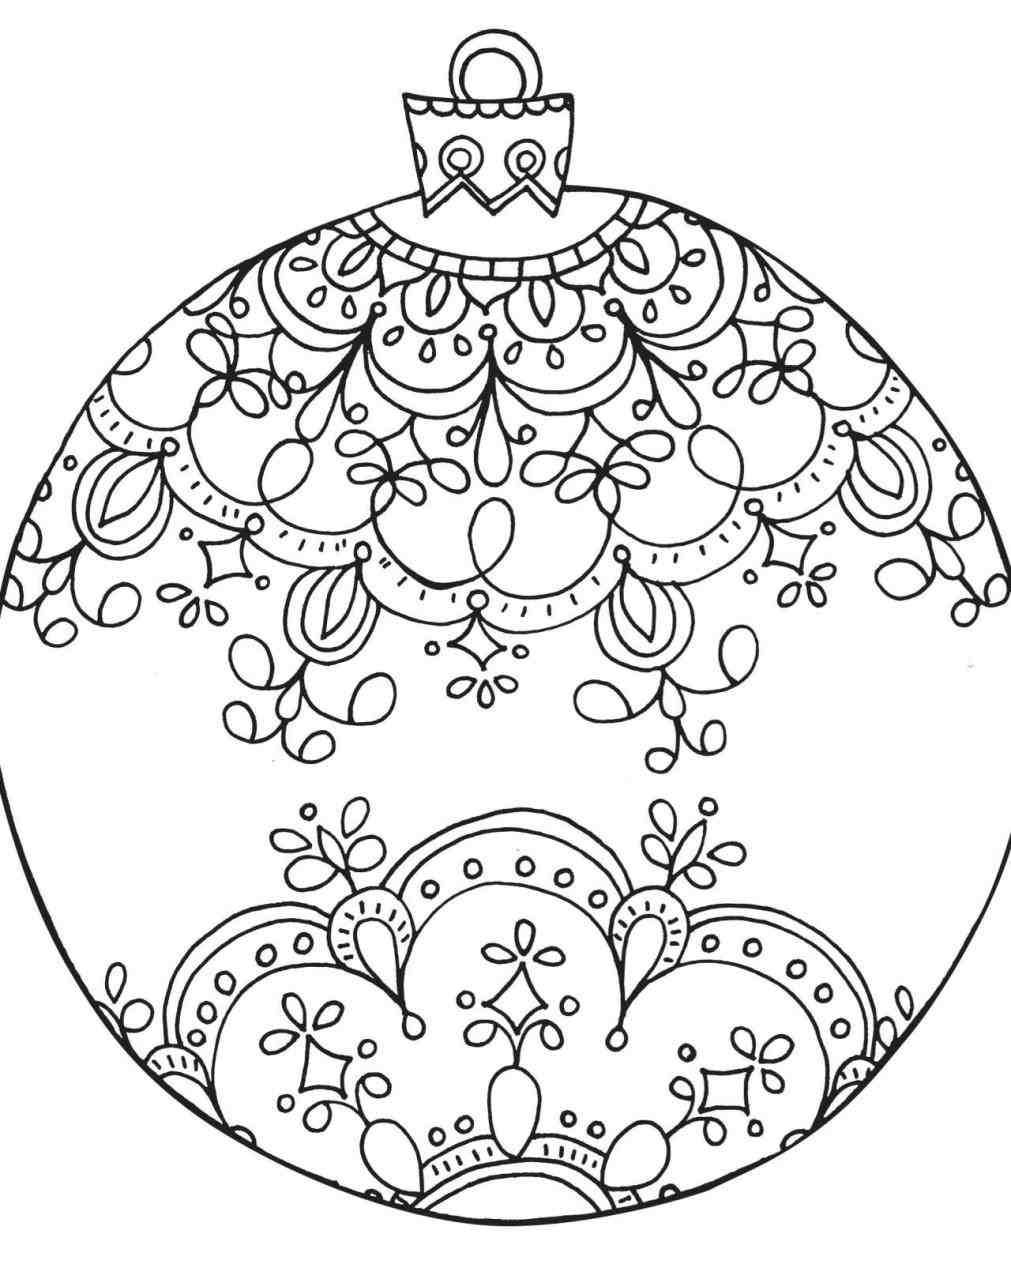 New Post christmas bulb coloring page interesting visit xmast.site ...